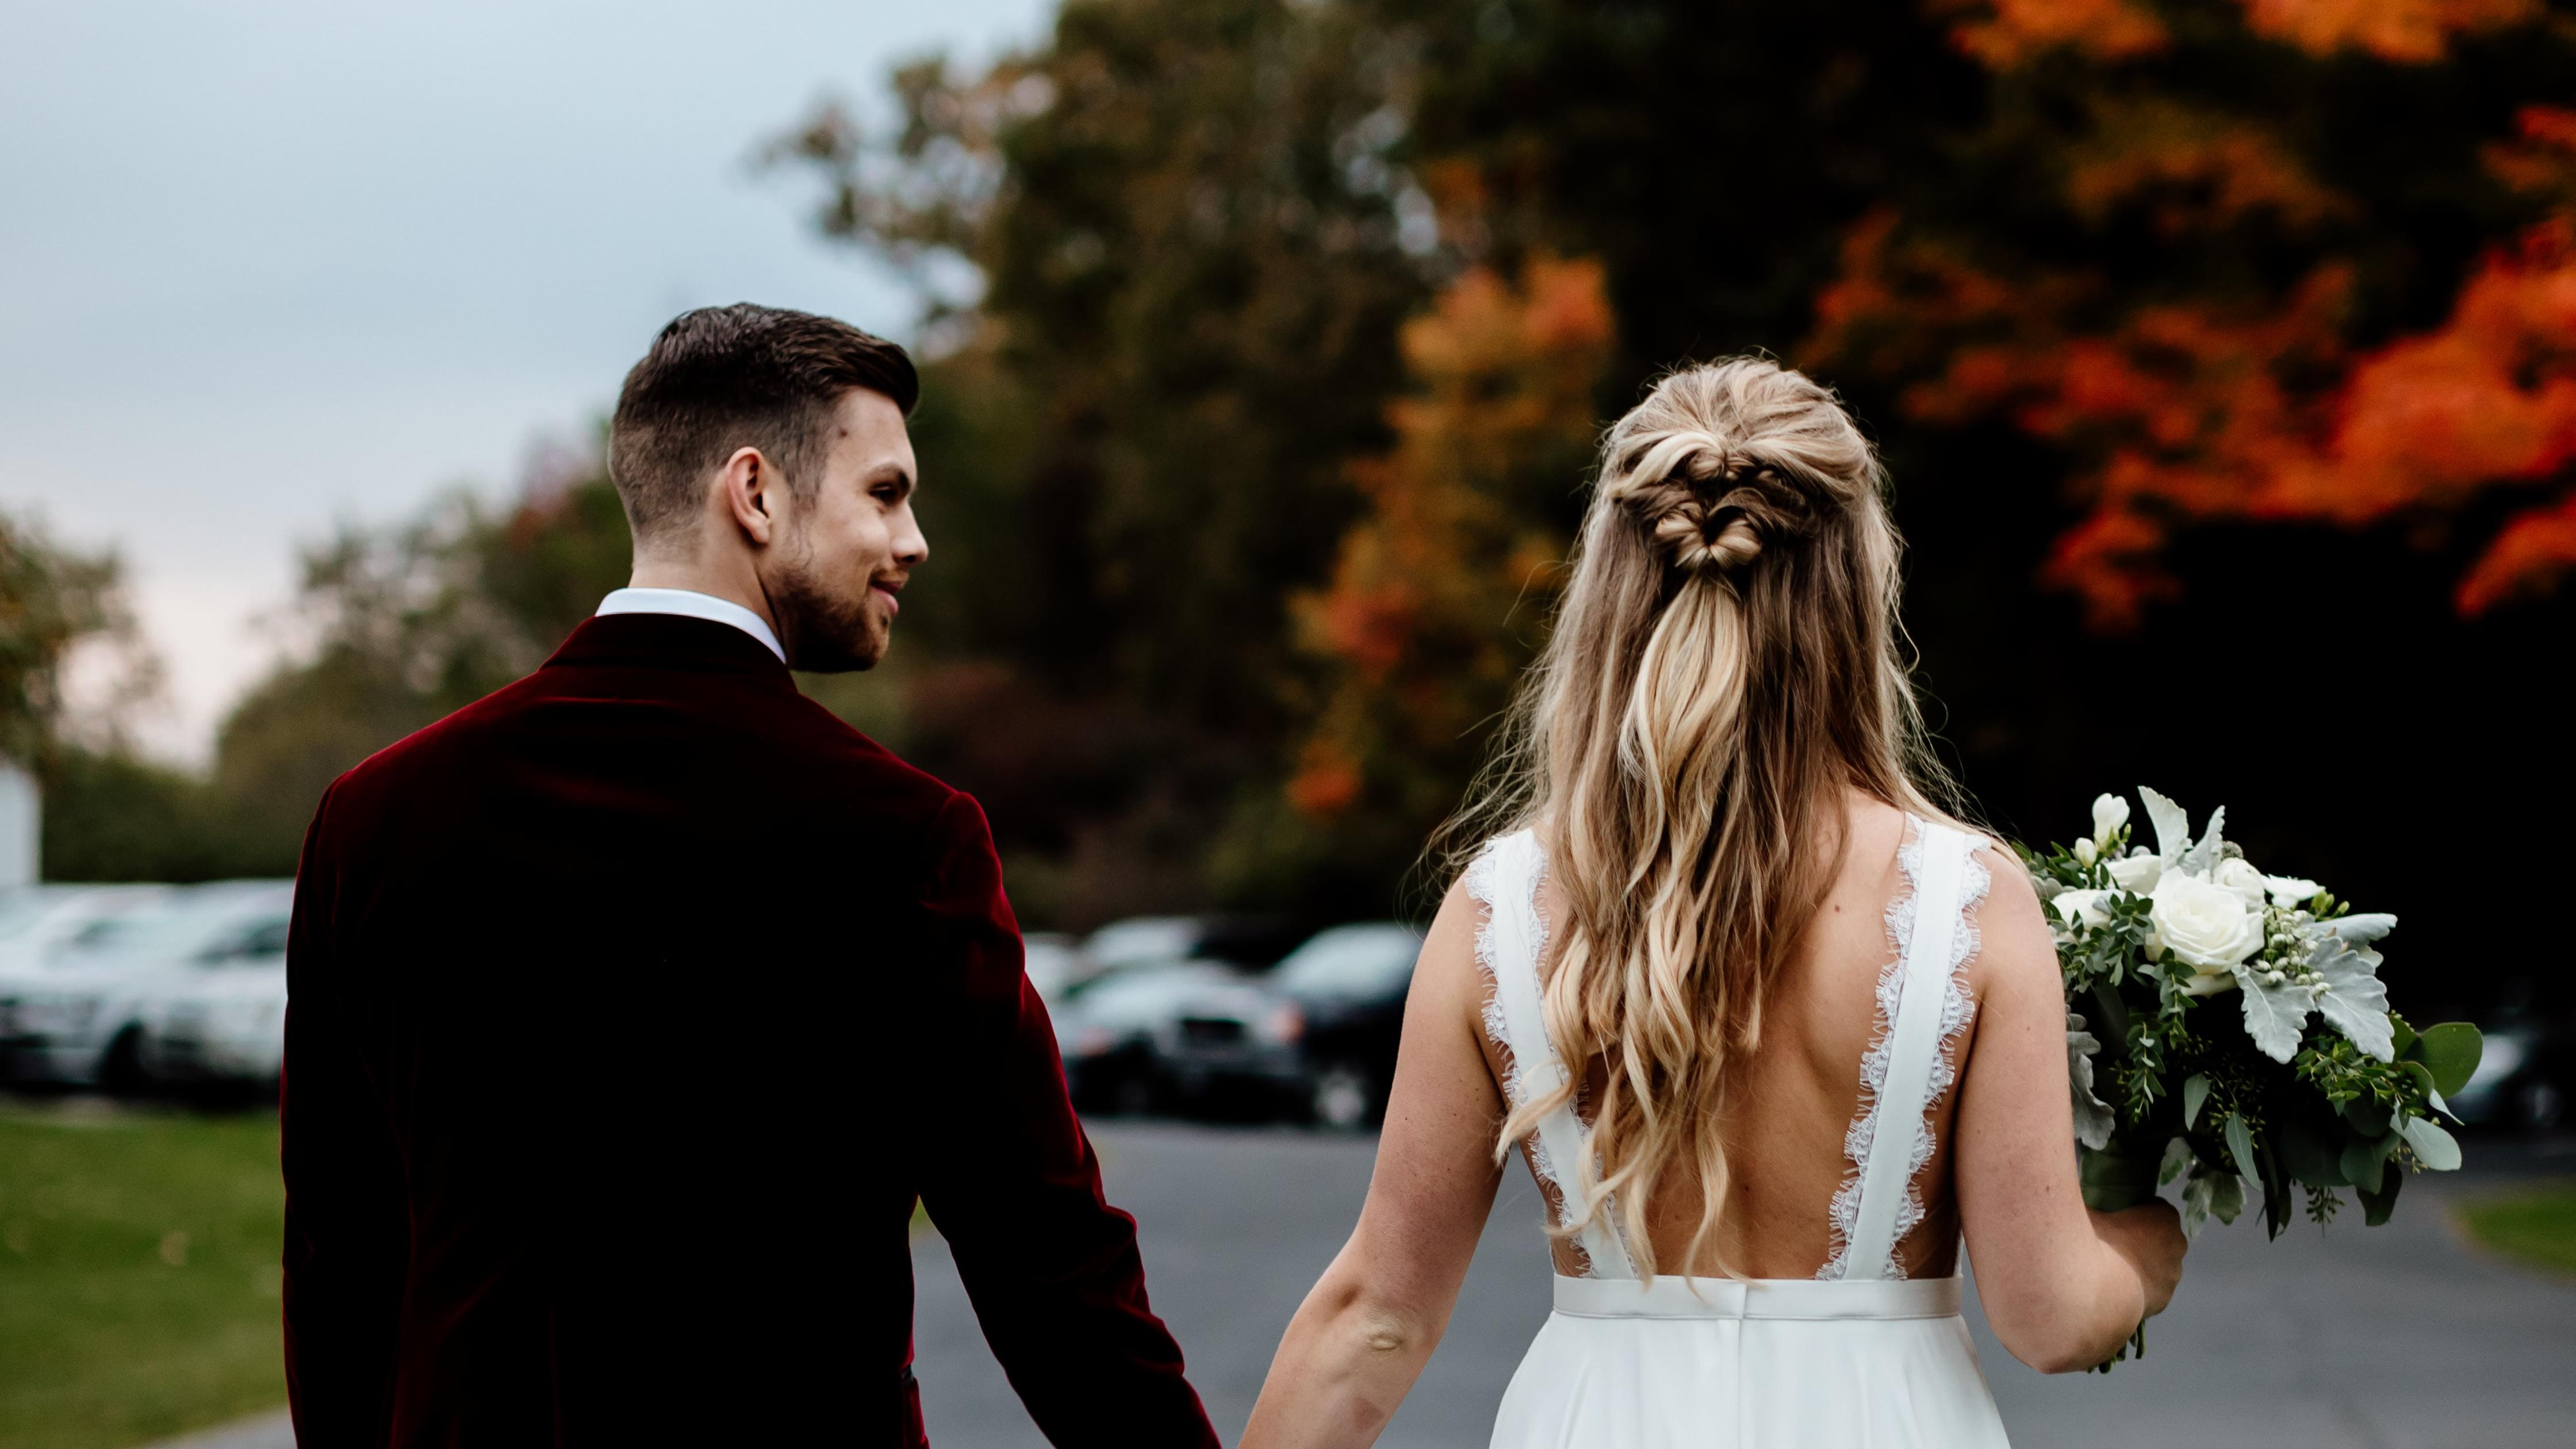 Nathaniel + Virginia | Lake Bluff, Illinois | Shoreacres